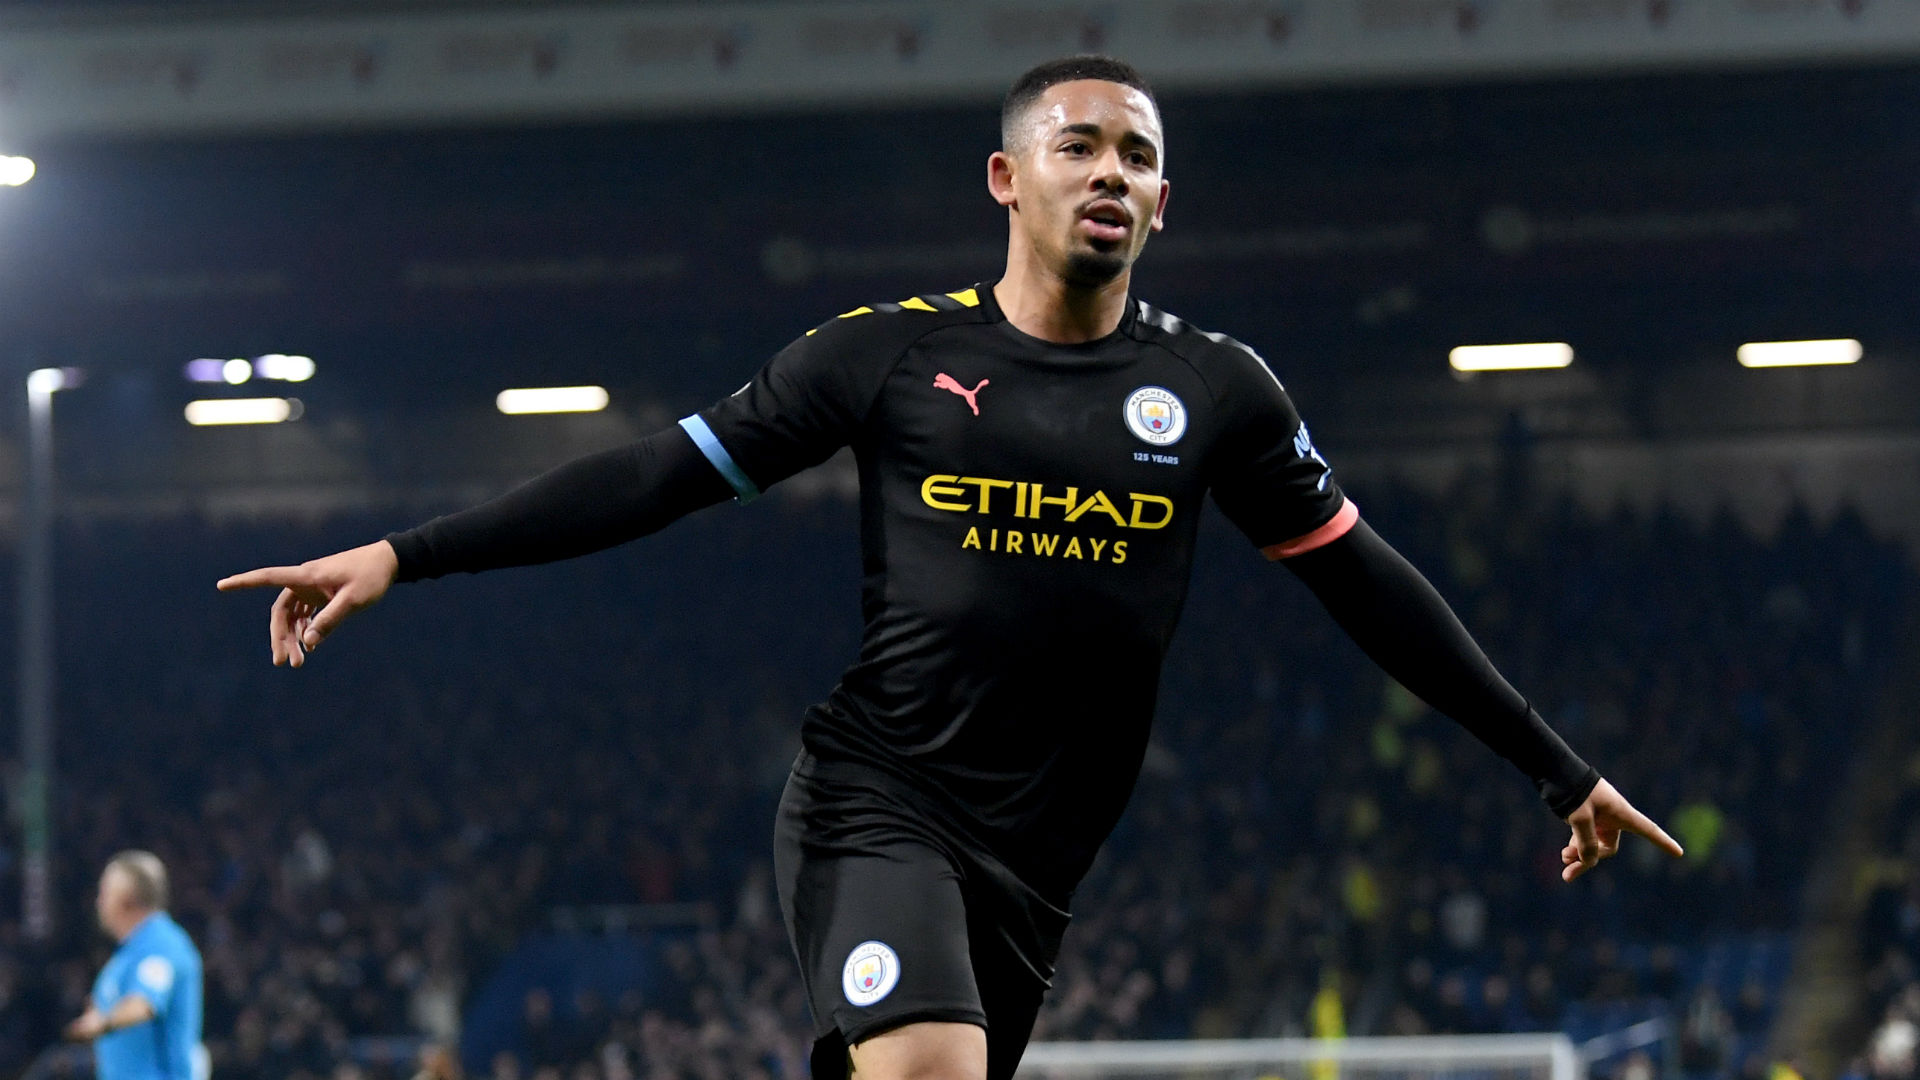 Burnley 1-4 Manchester City: Jesus at the double as champions run riot